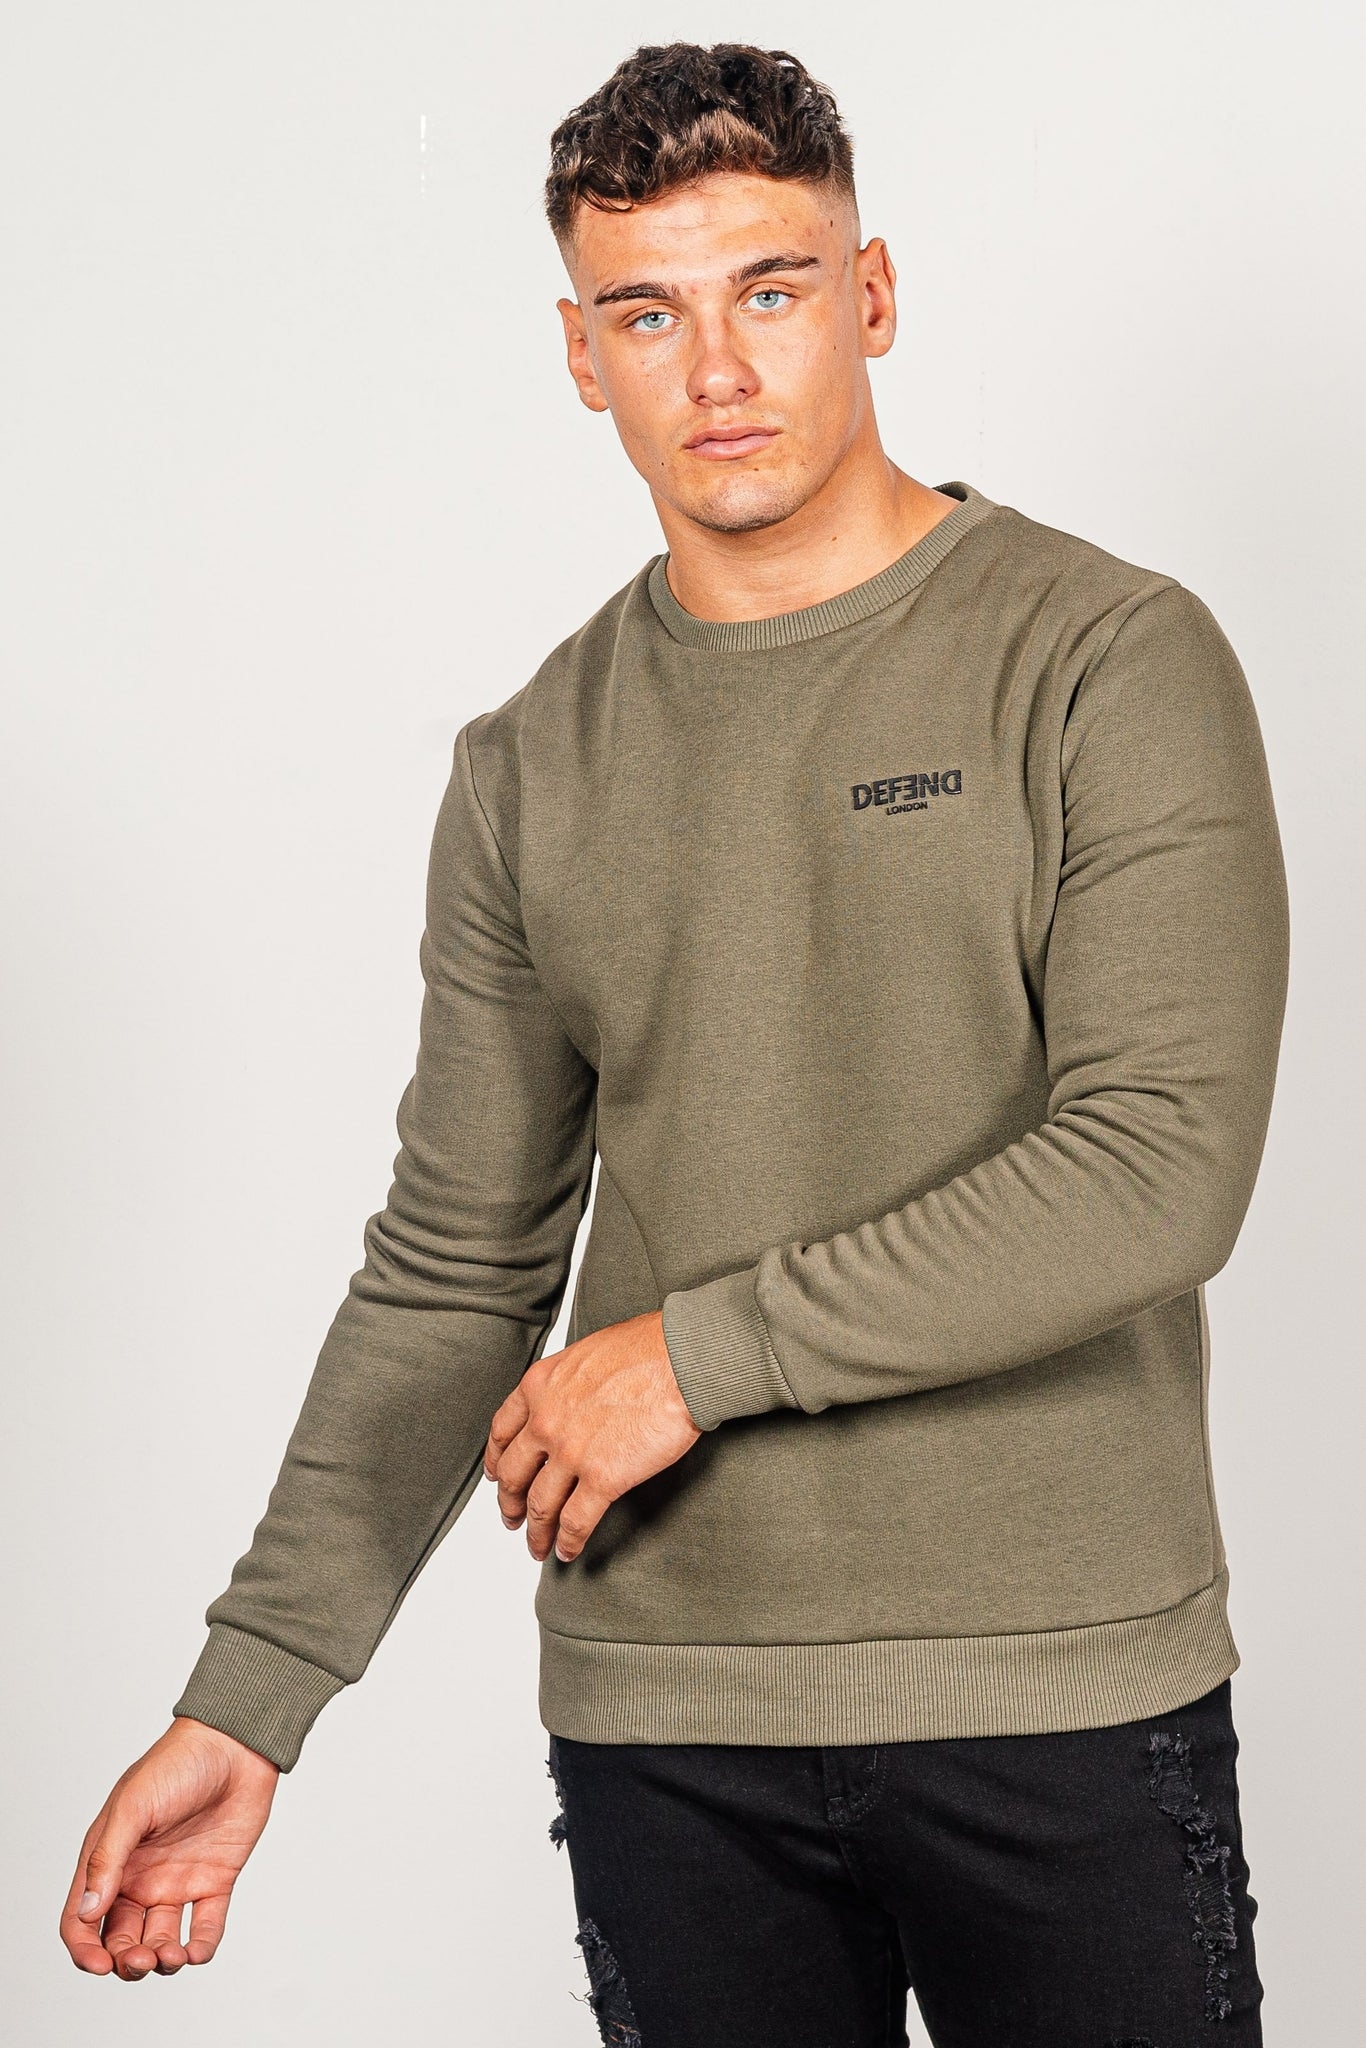 Men's Charmer Sweatshirt in Khaki - DEFEND LONDON